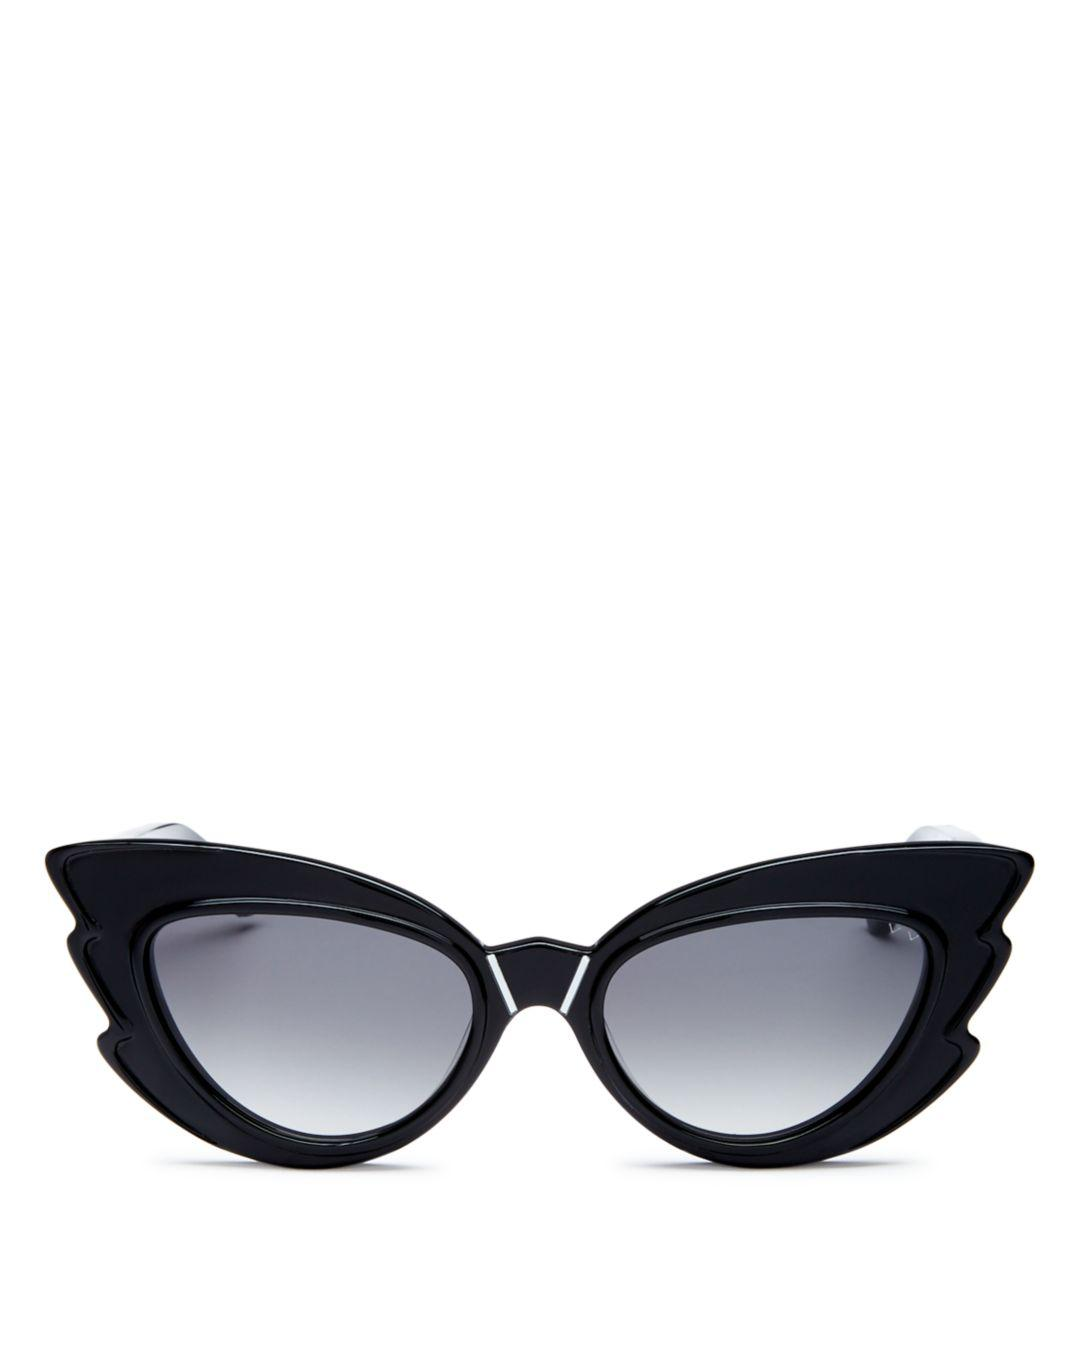 658e054b7c Lyst - Pared Eyewear 51mm in Black